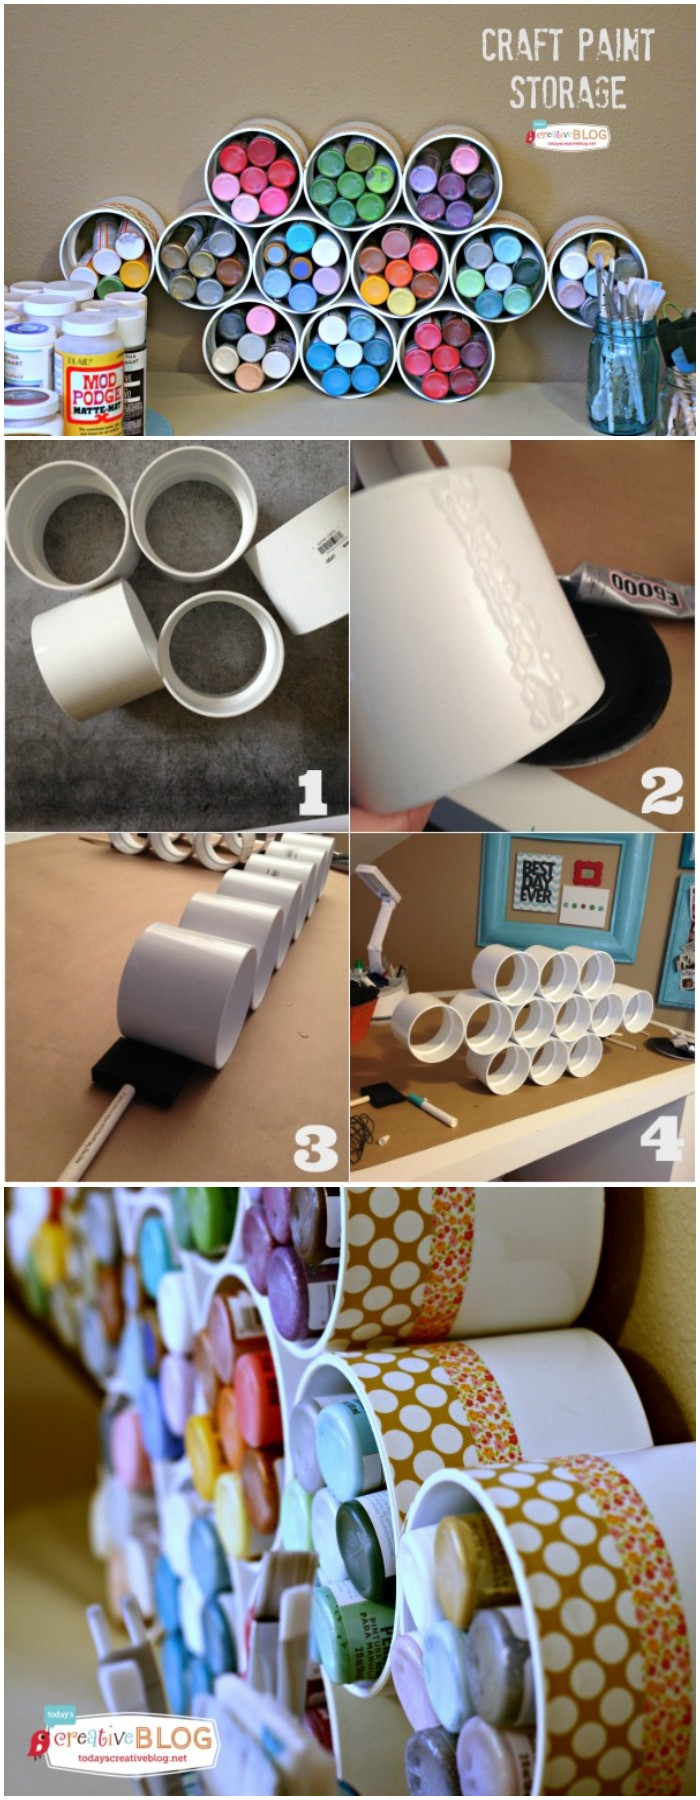 Craft Paint Storage With Pvc Pipe